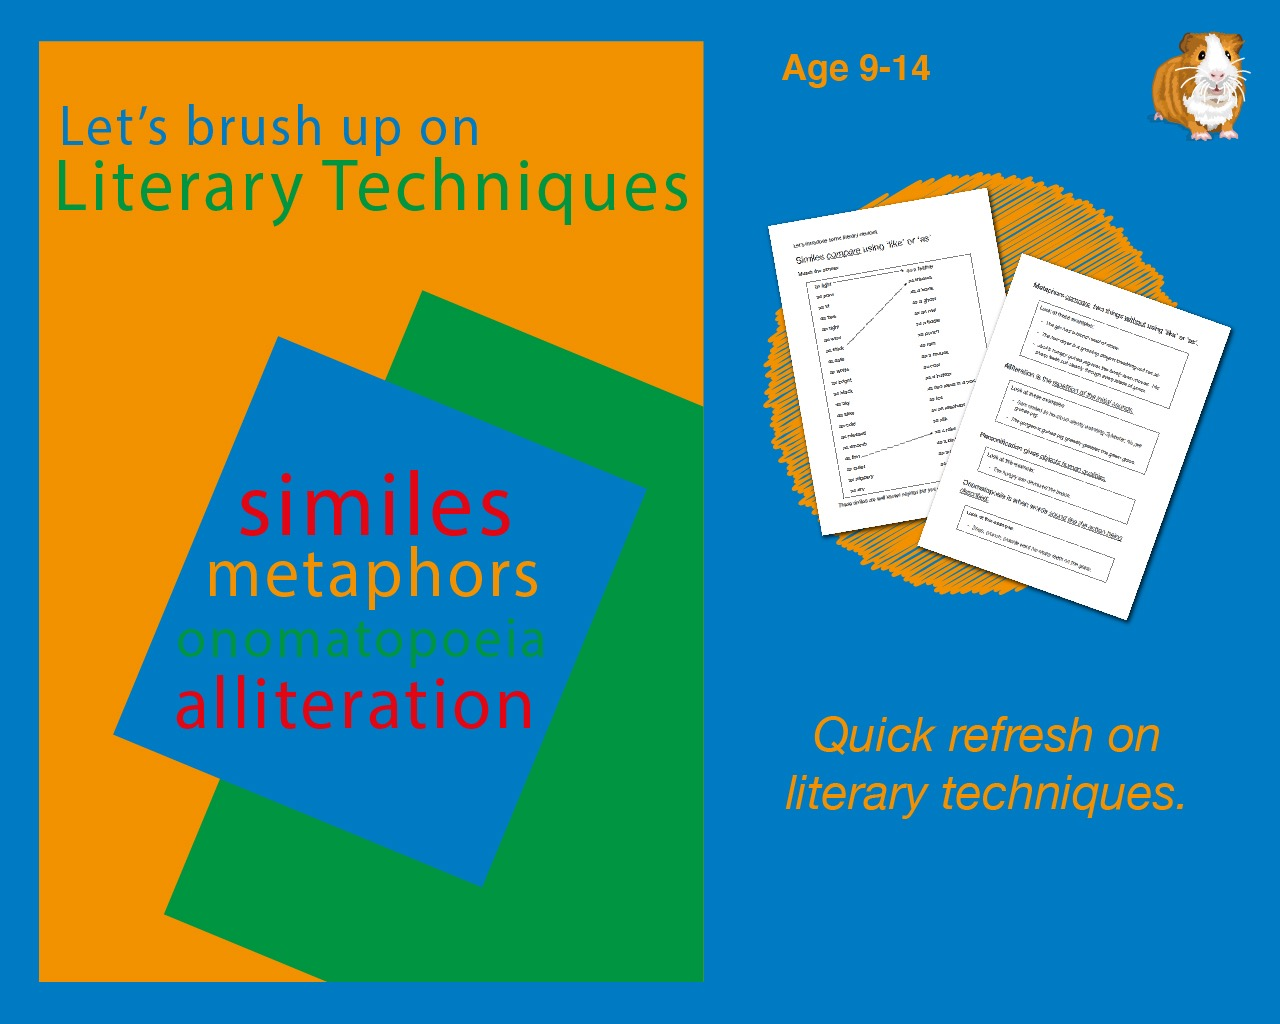 Brush Up On Literary Techniques (9-14 years)